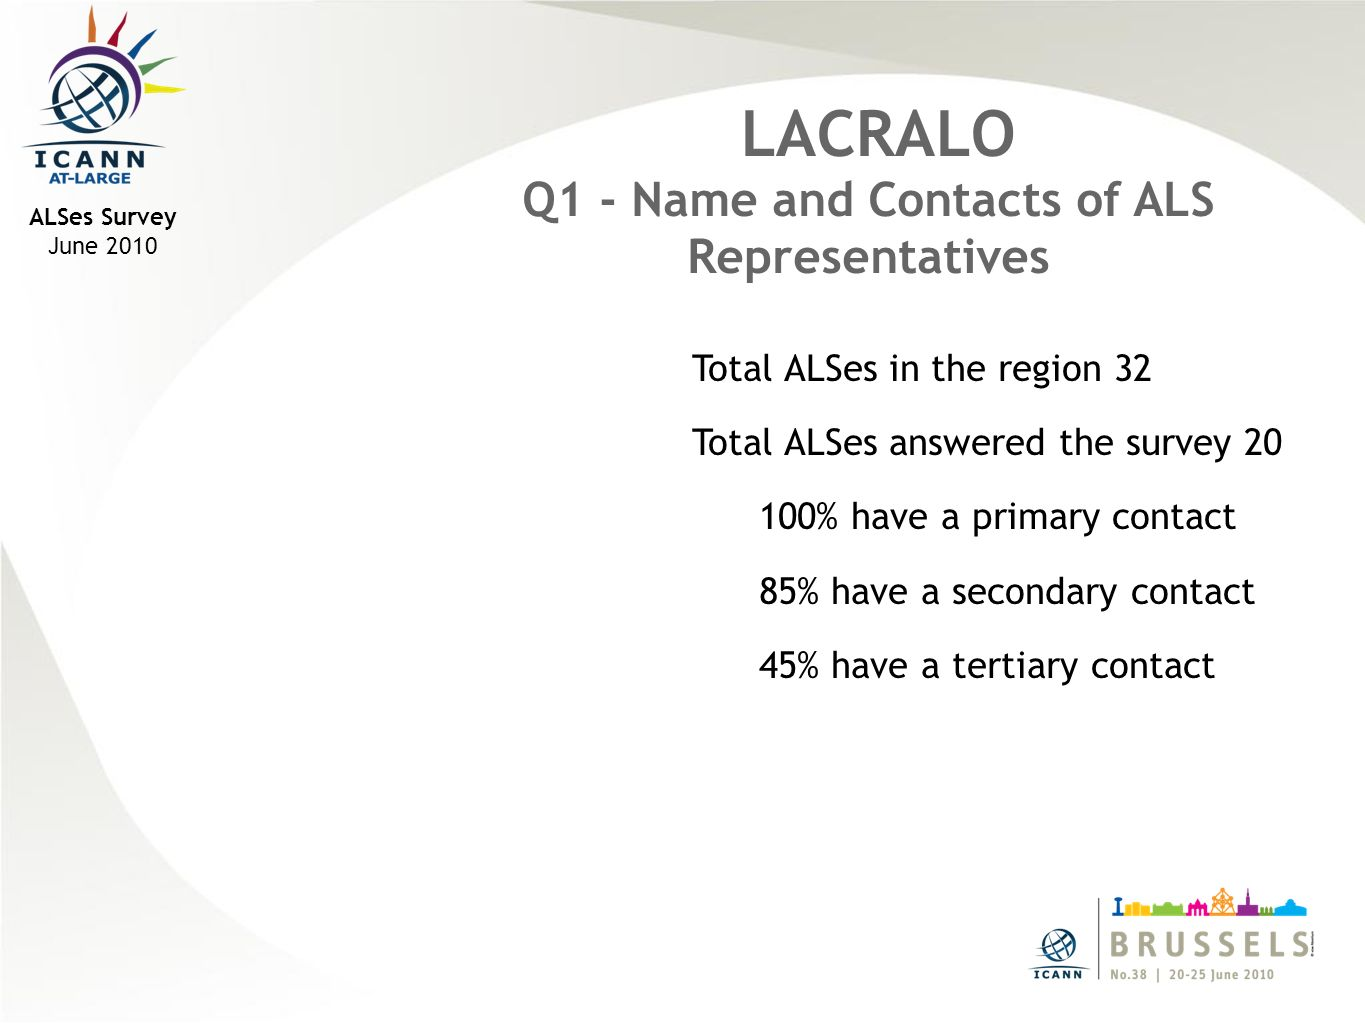 Total ALSes in the region 32 Total ALSes answered the survey 20 100% have a primary contact 85% have a secondary contact 45% have a tertiary contact LACRALO Q1 - Name and Contacts of ALS Representatives ALSes Survey June 2010